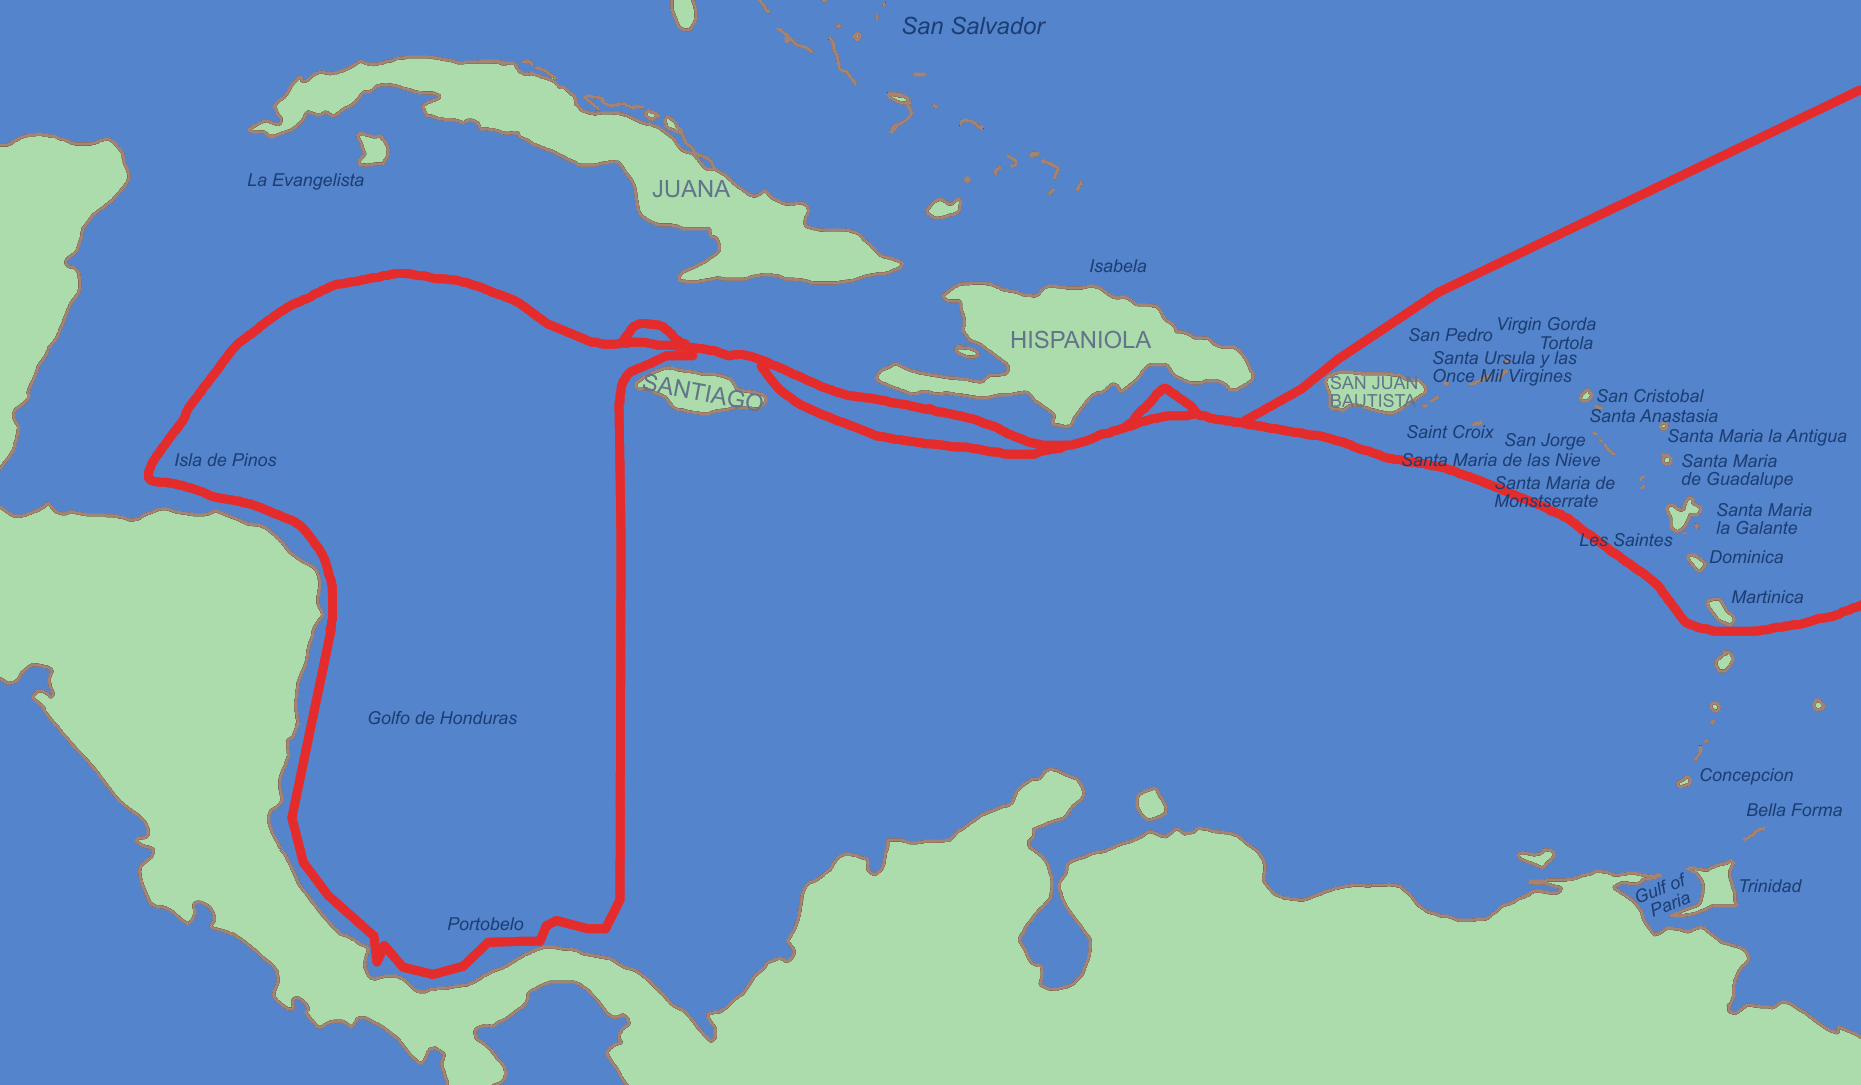 Fourth voyage of Christopher Columbus in 1502